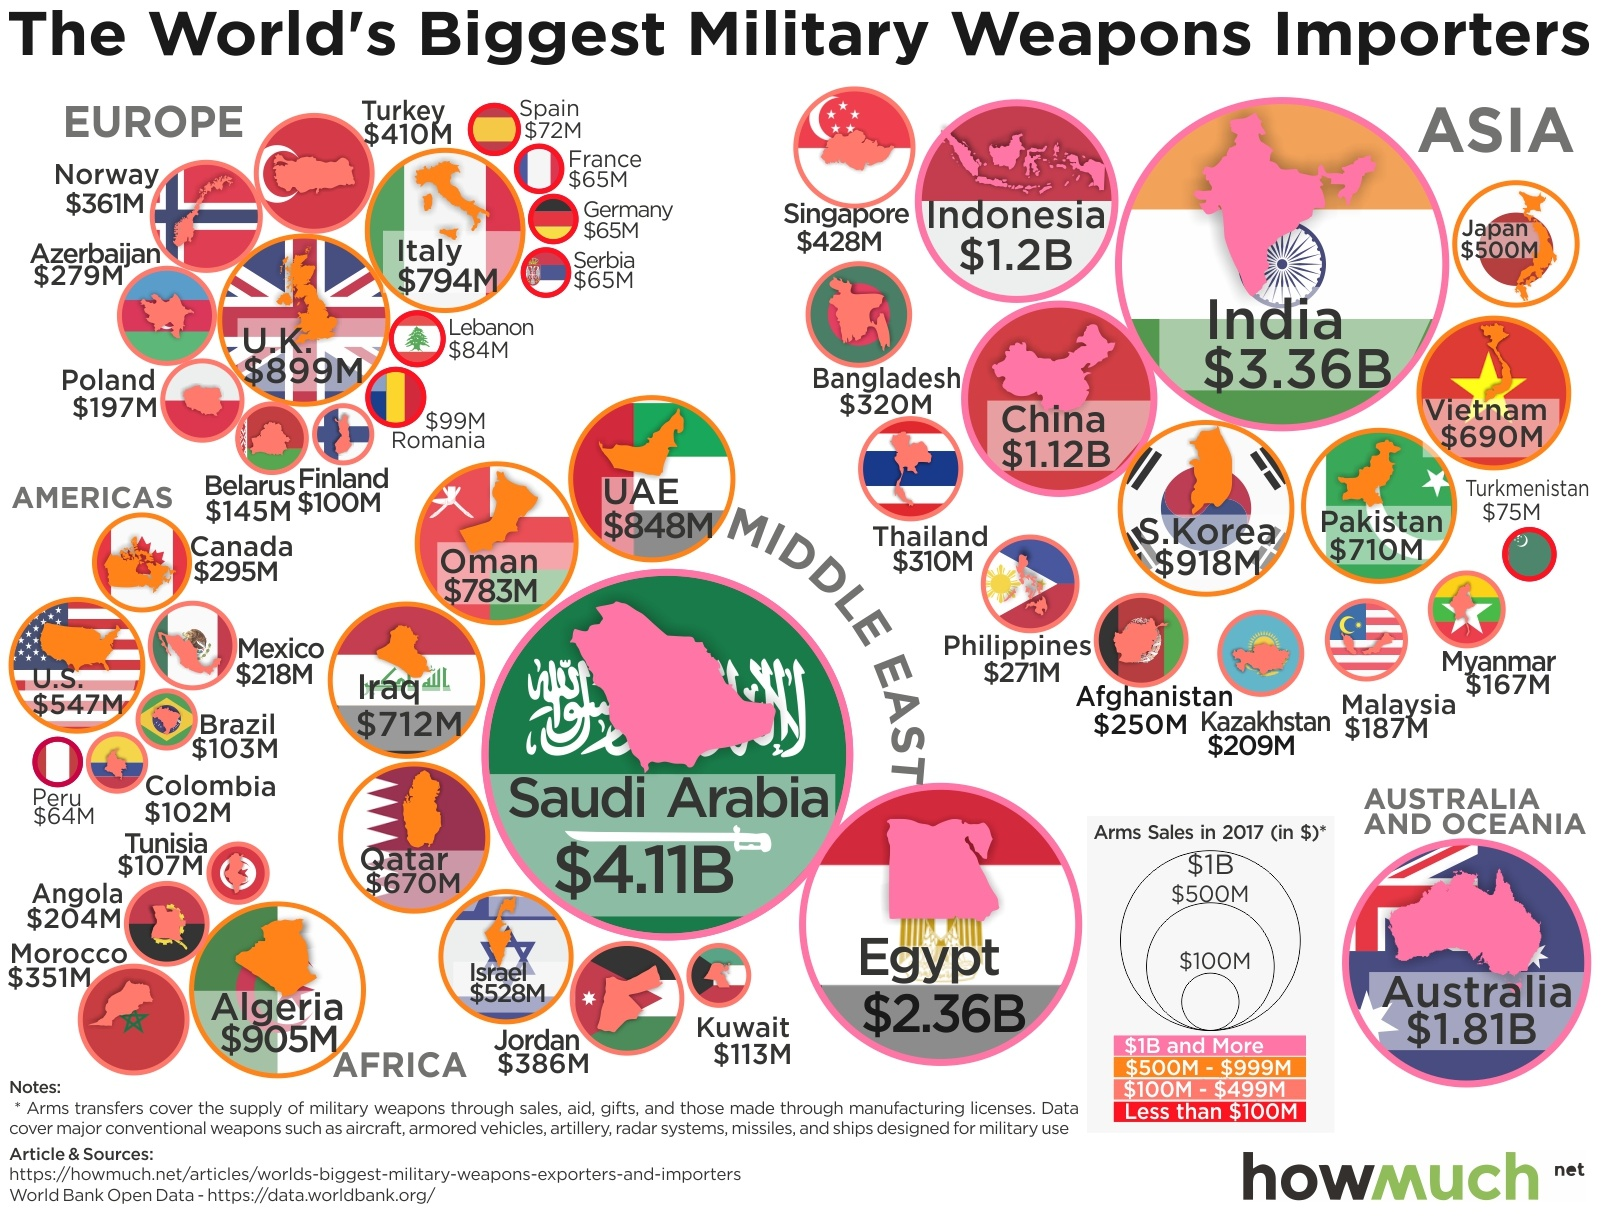 arms-imports-by-countries-2017-(2)-9606 - The Globalist